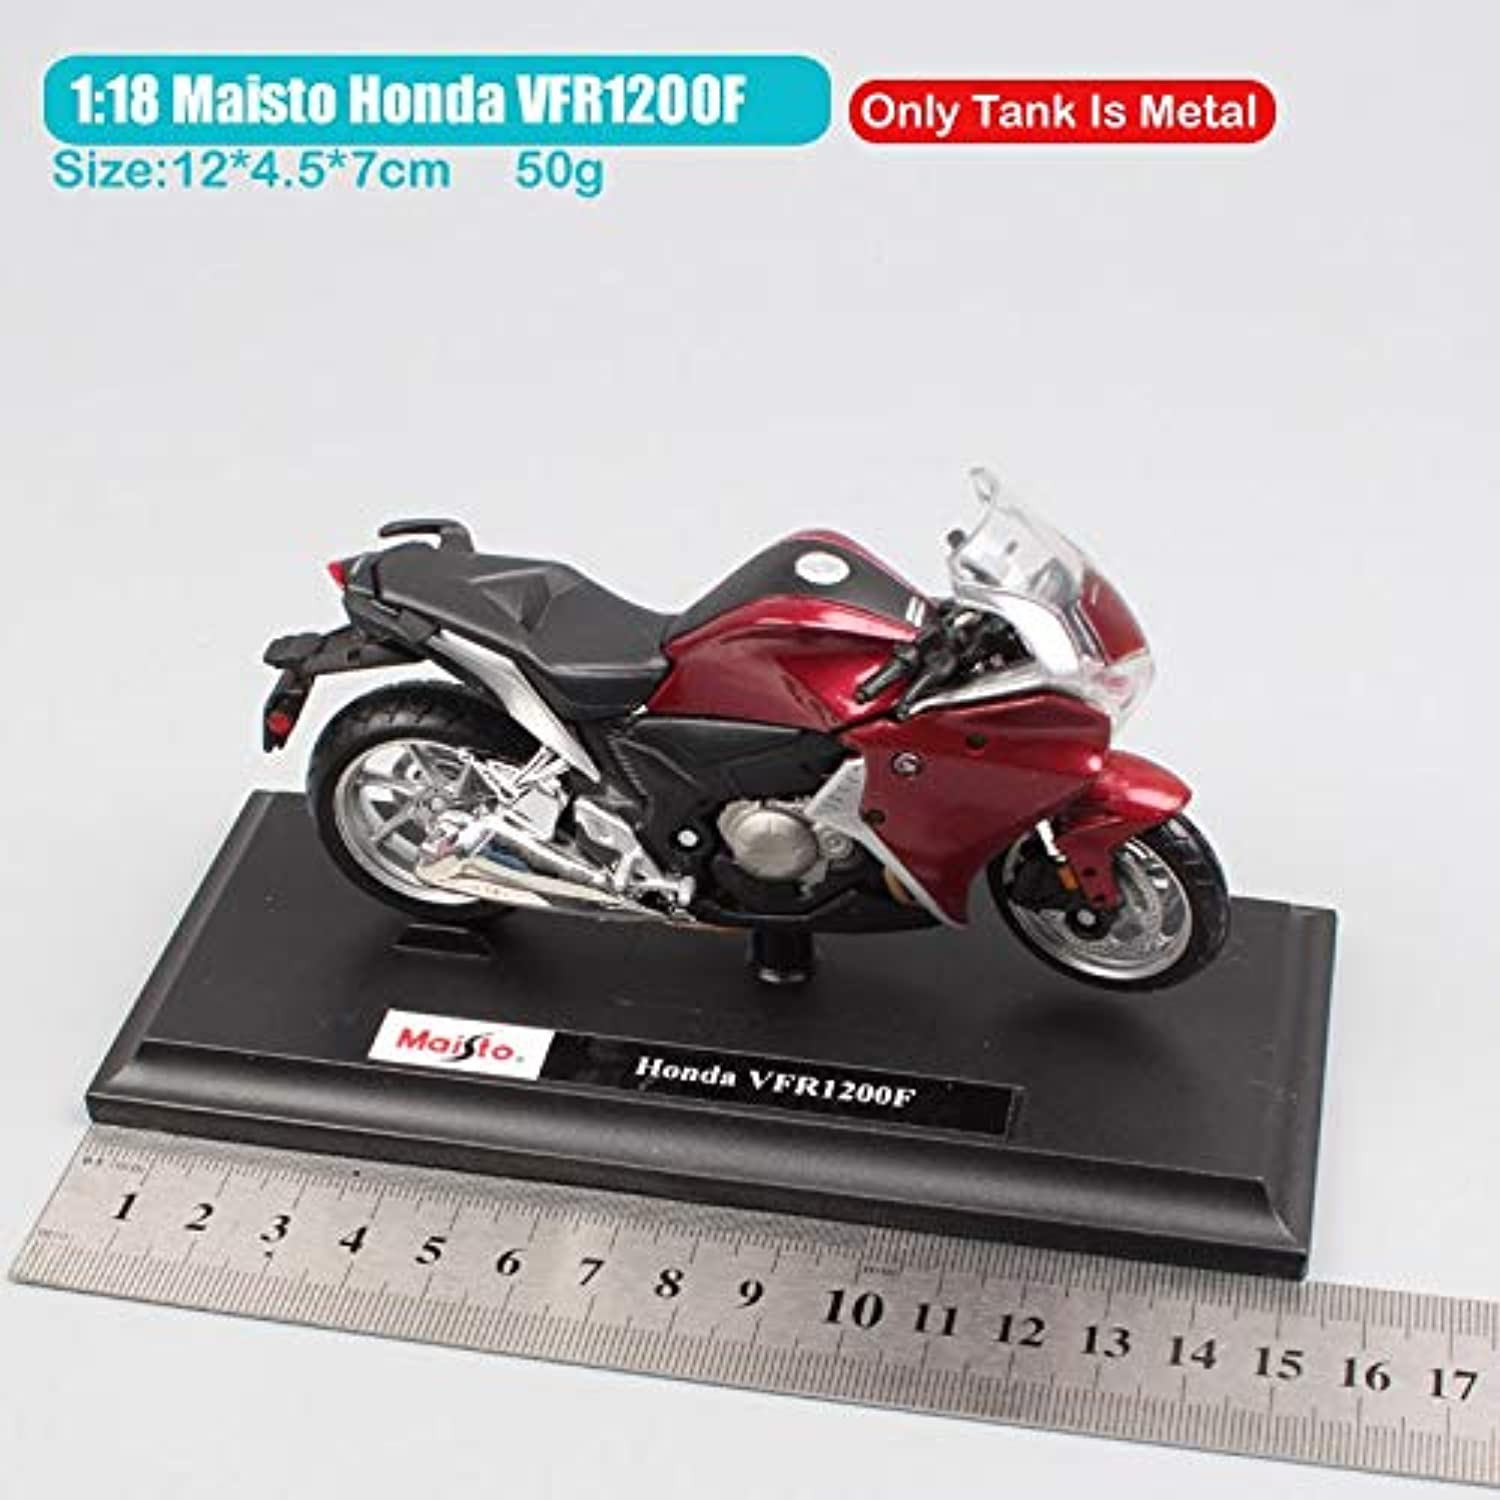 Generic 1 18 Scale Maisto Honda VF VFR1200F V4 Engine DCT Sport Touring Bike Motorcycle Racing die cast Toy Models Cars Vehicle Replicas Honda VFR1200F